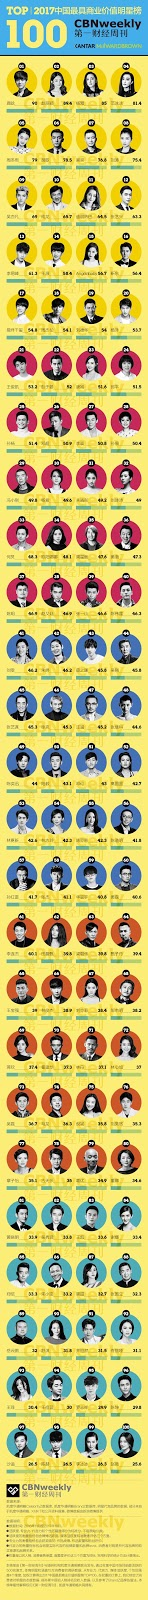 Top 100 commercially valuable stars in China CBN Weekly